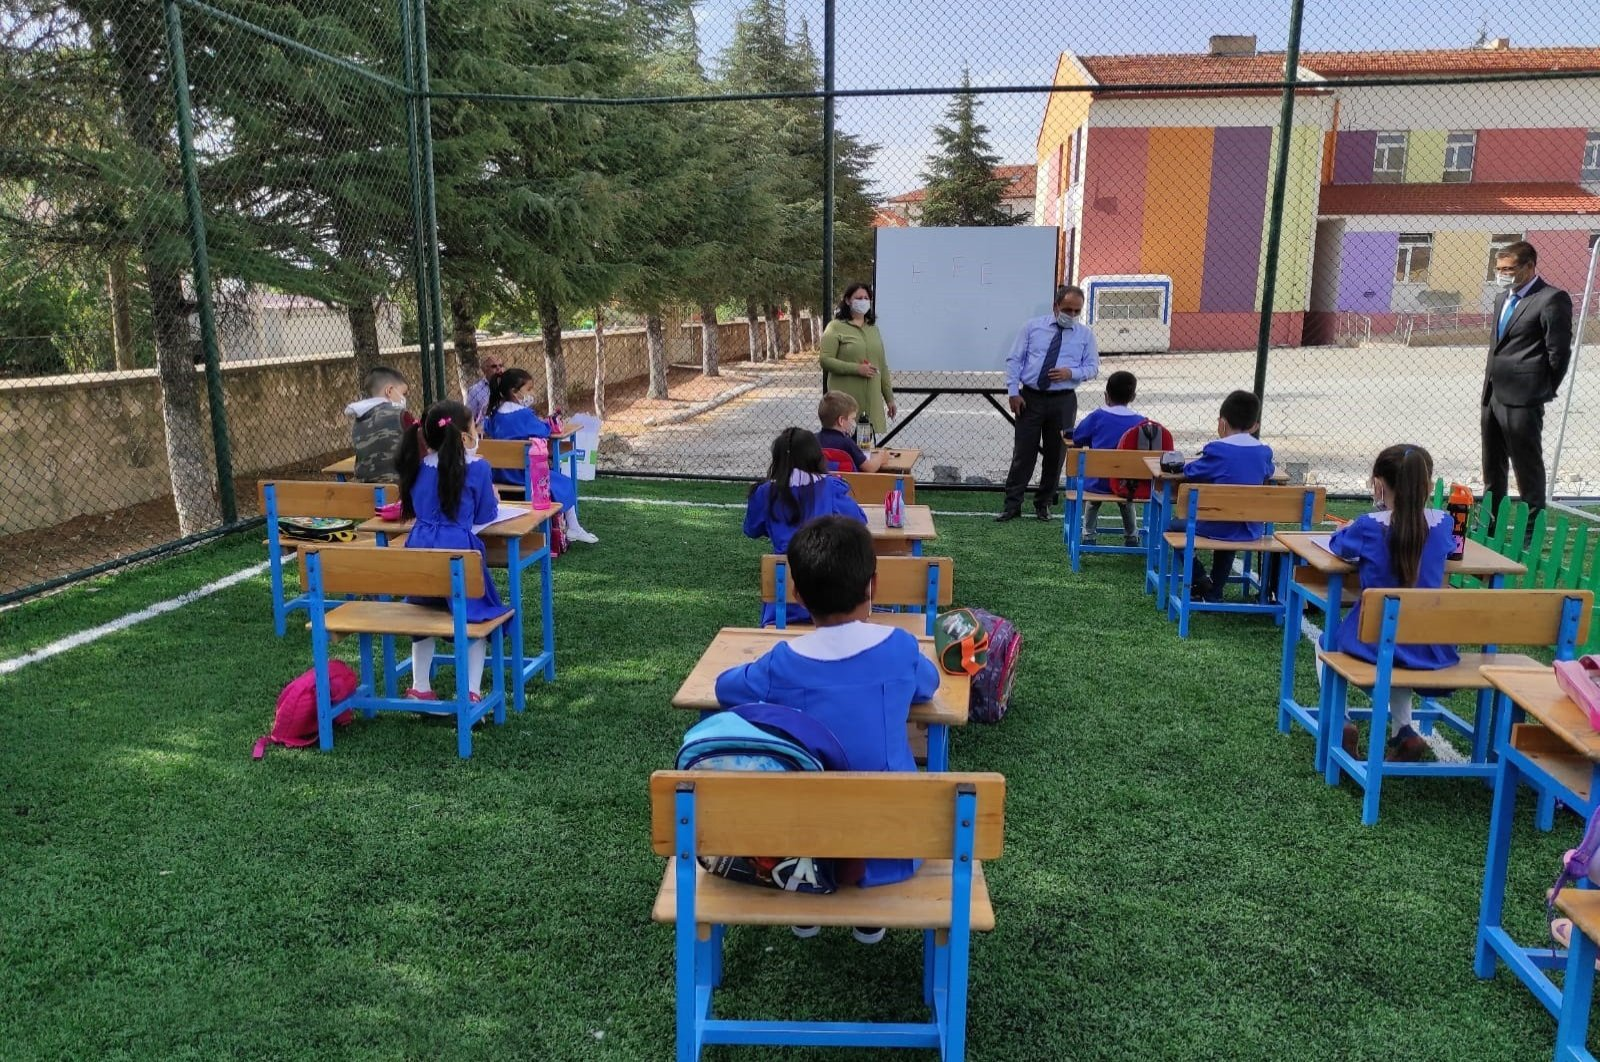 """Children attend an """"outdoors"""" class as part of measures against COVID-19 in Konya, central Turkey, Sept. 30, 2020. (IHA Photo)"""